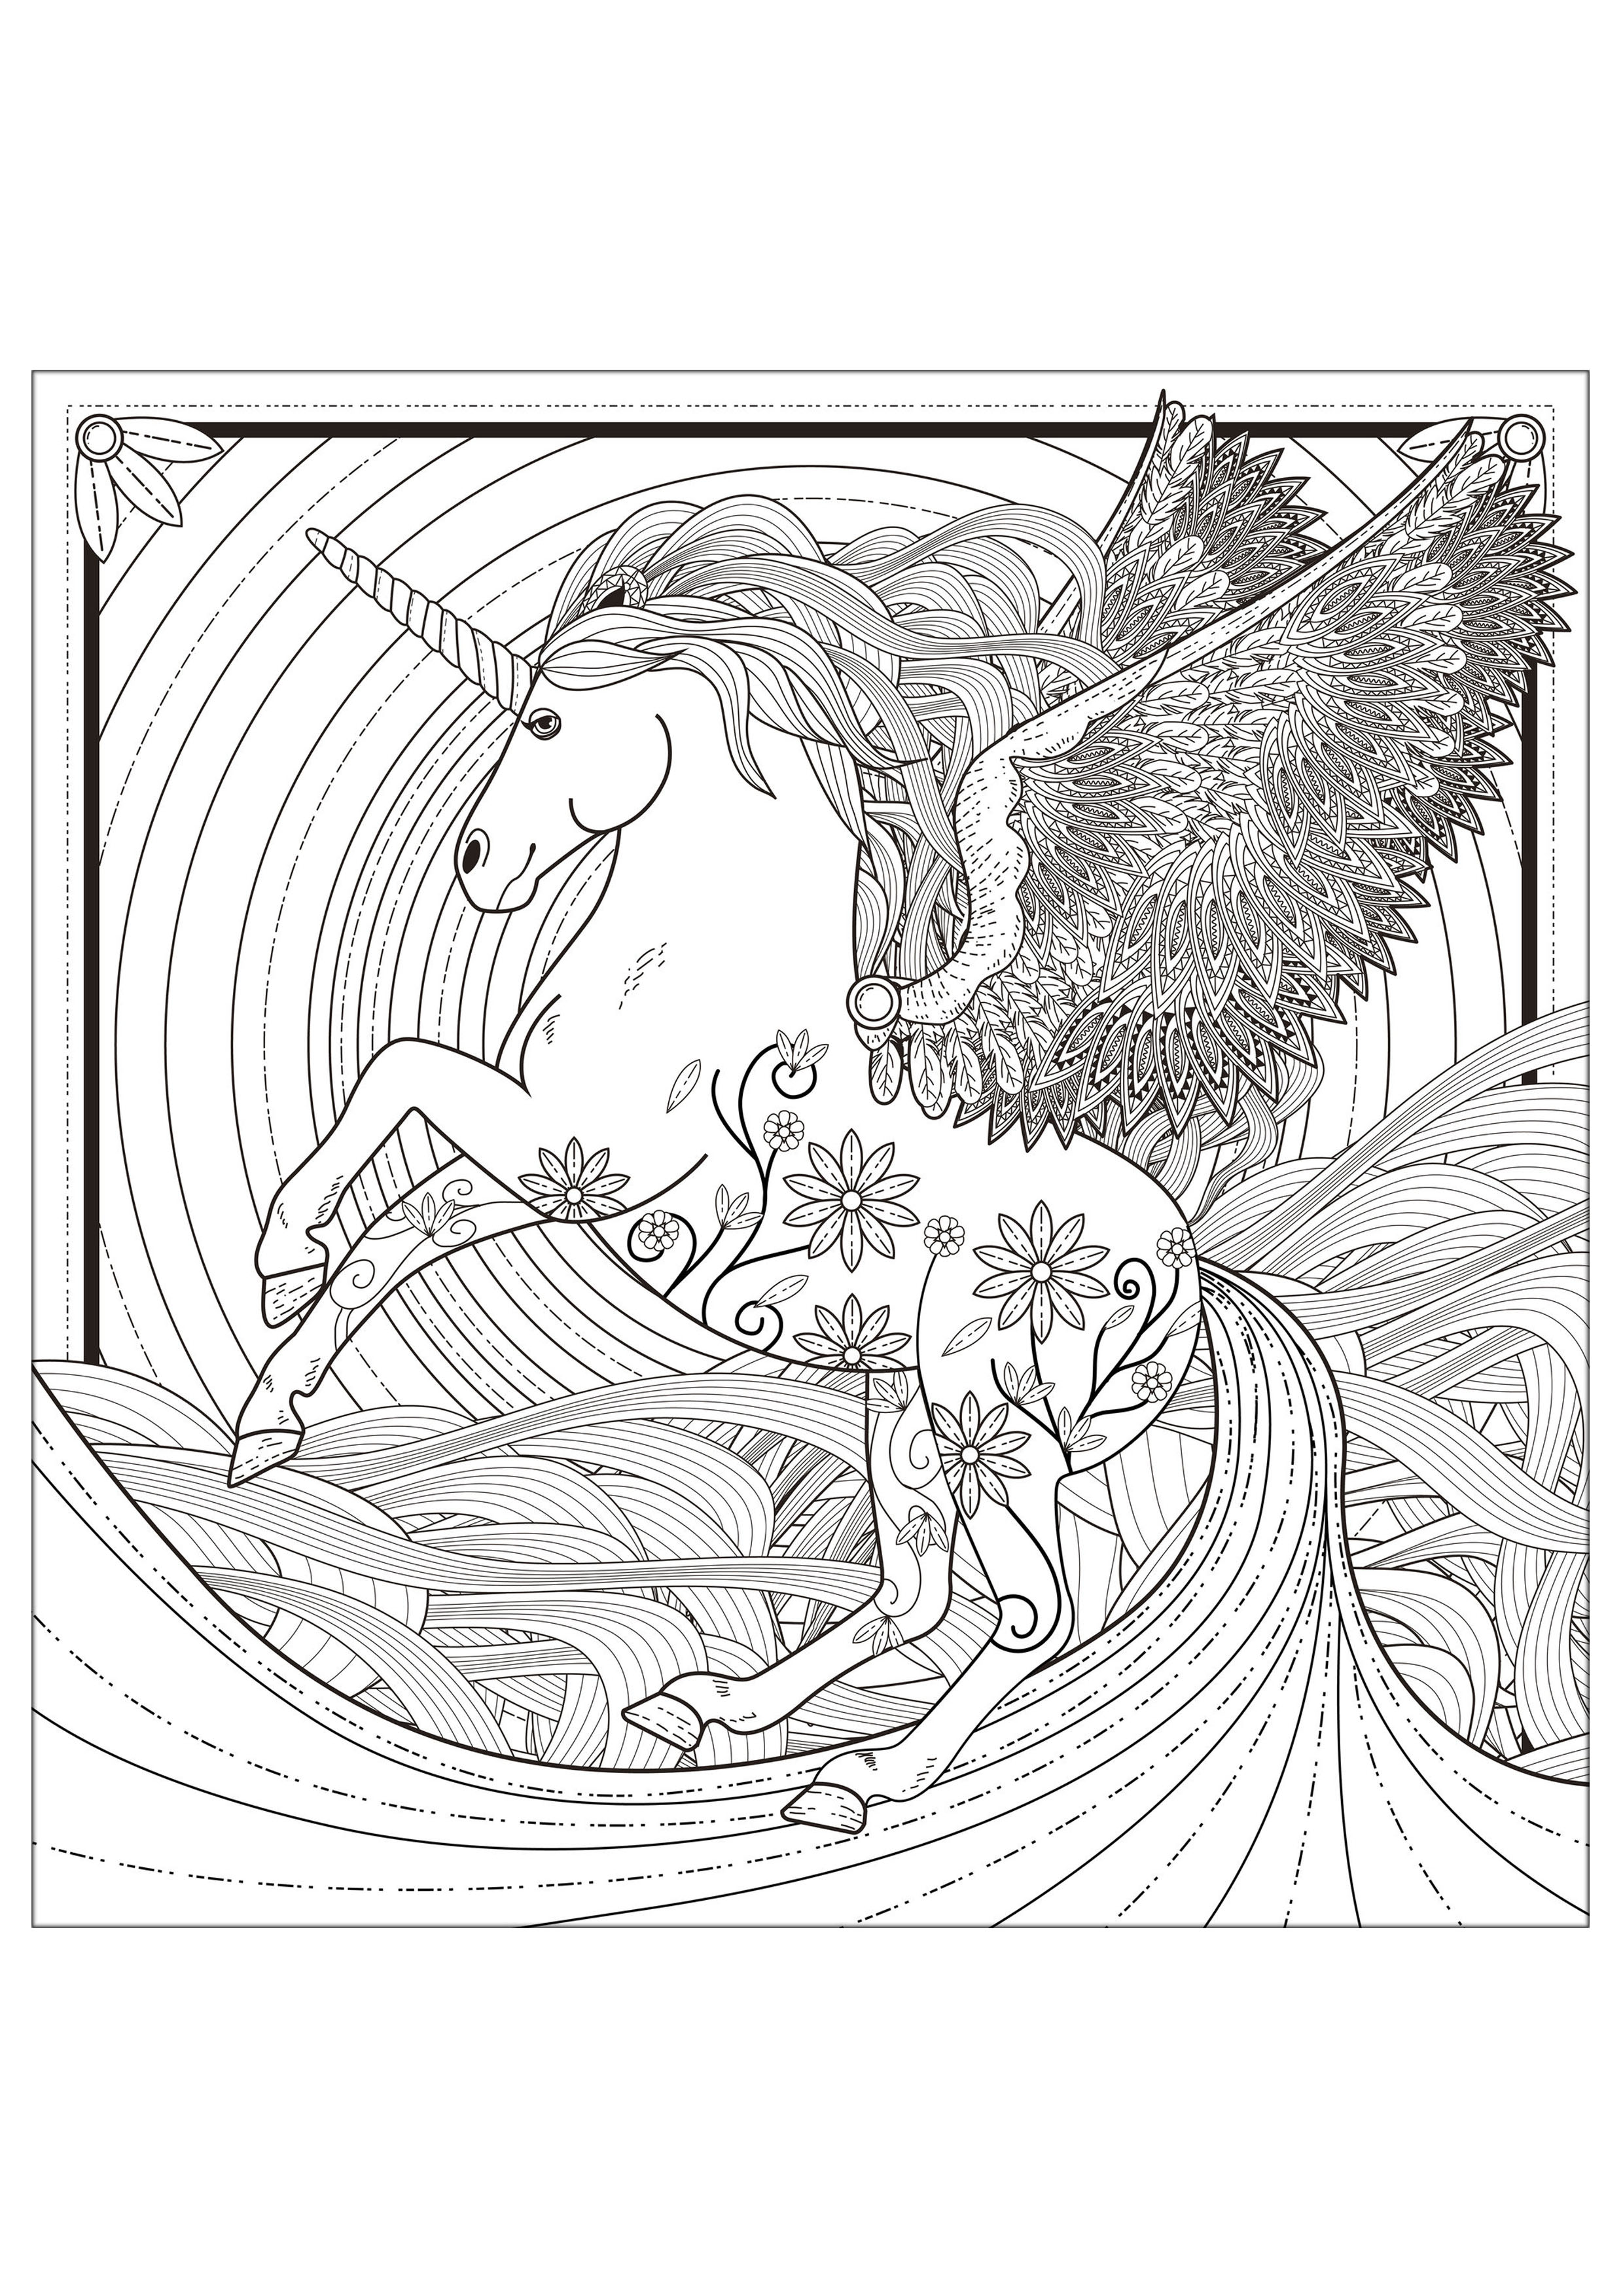 Unicorn Coloring Pages For Adults Justcolor